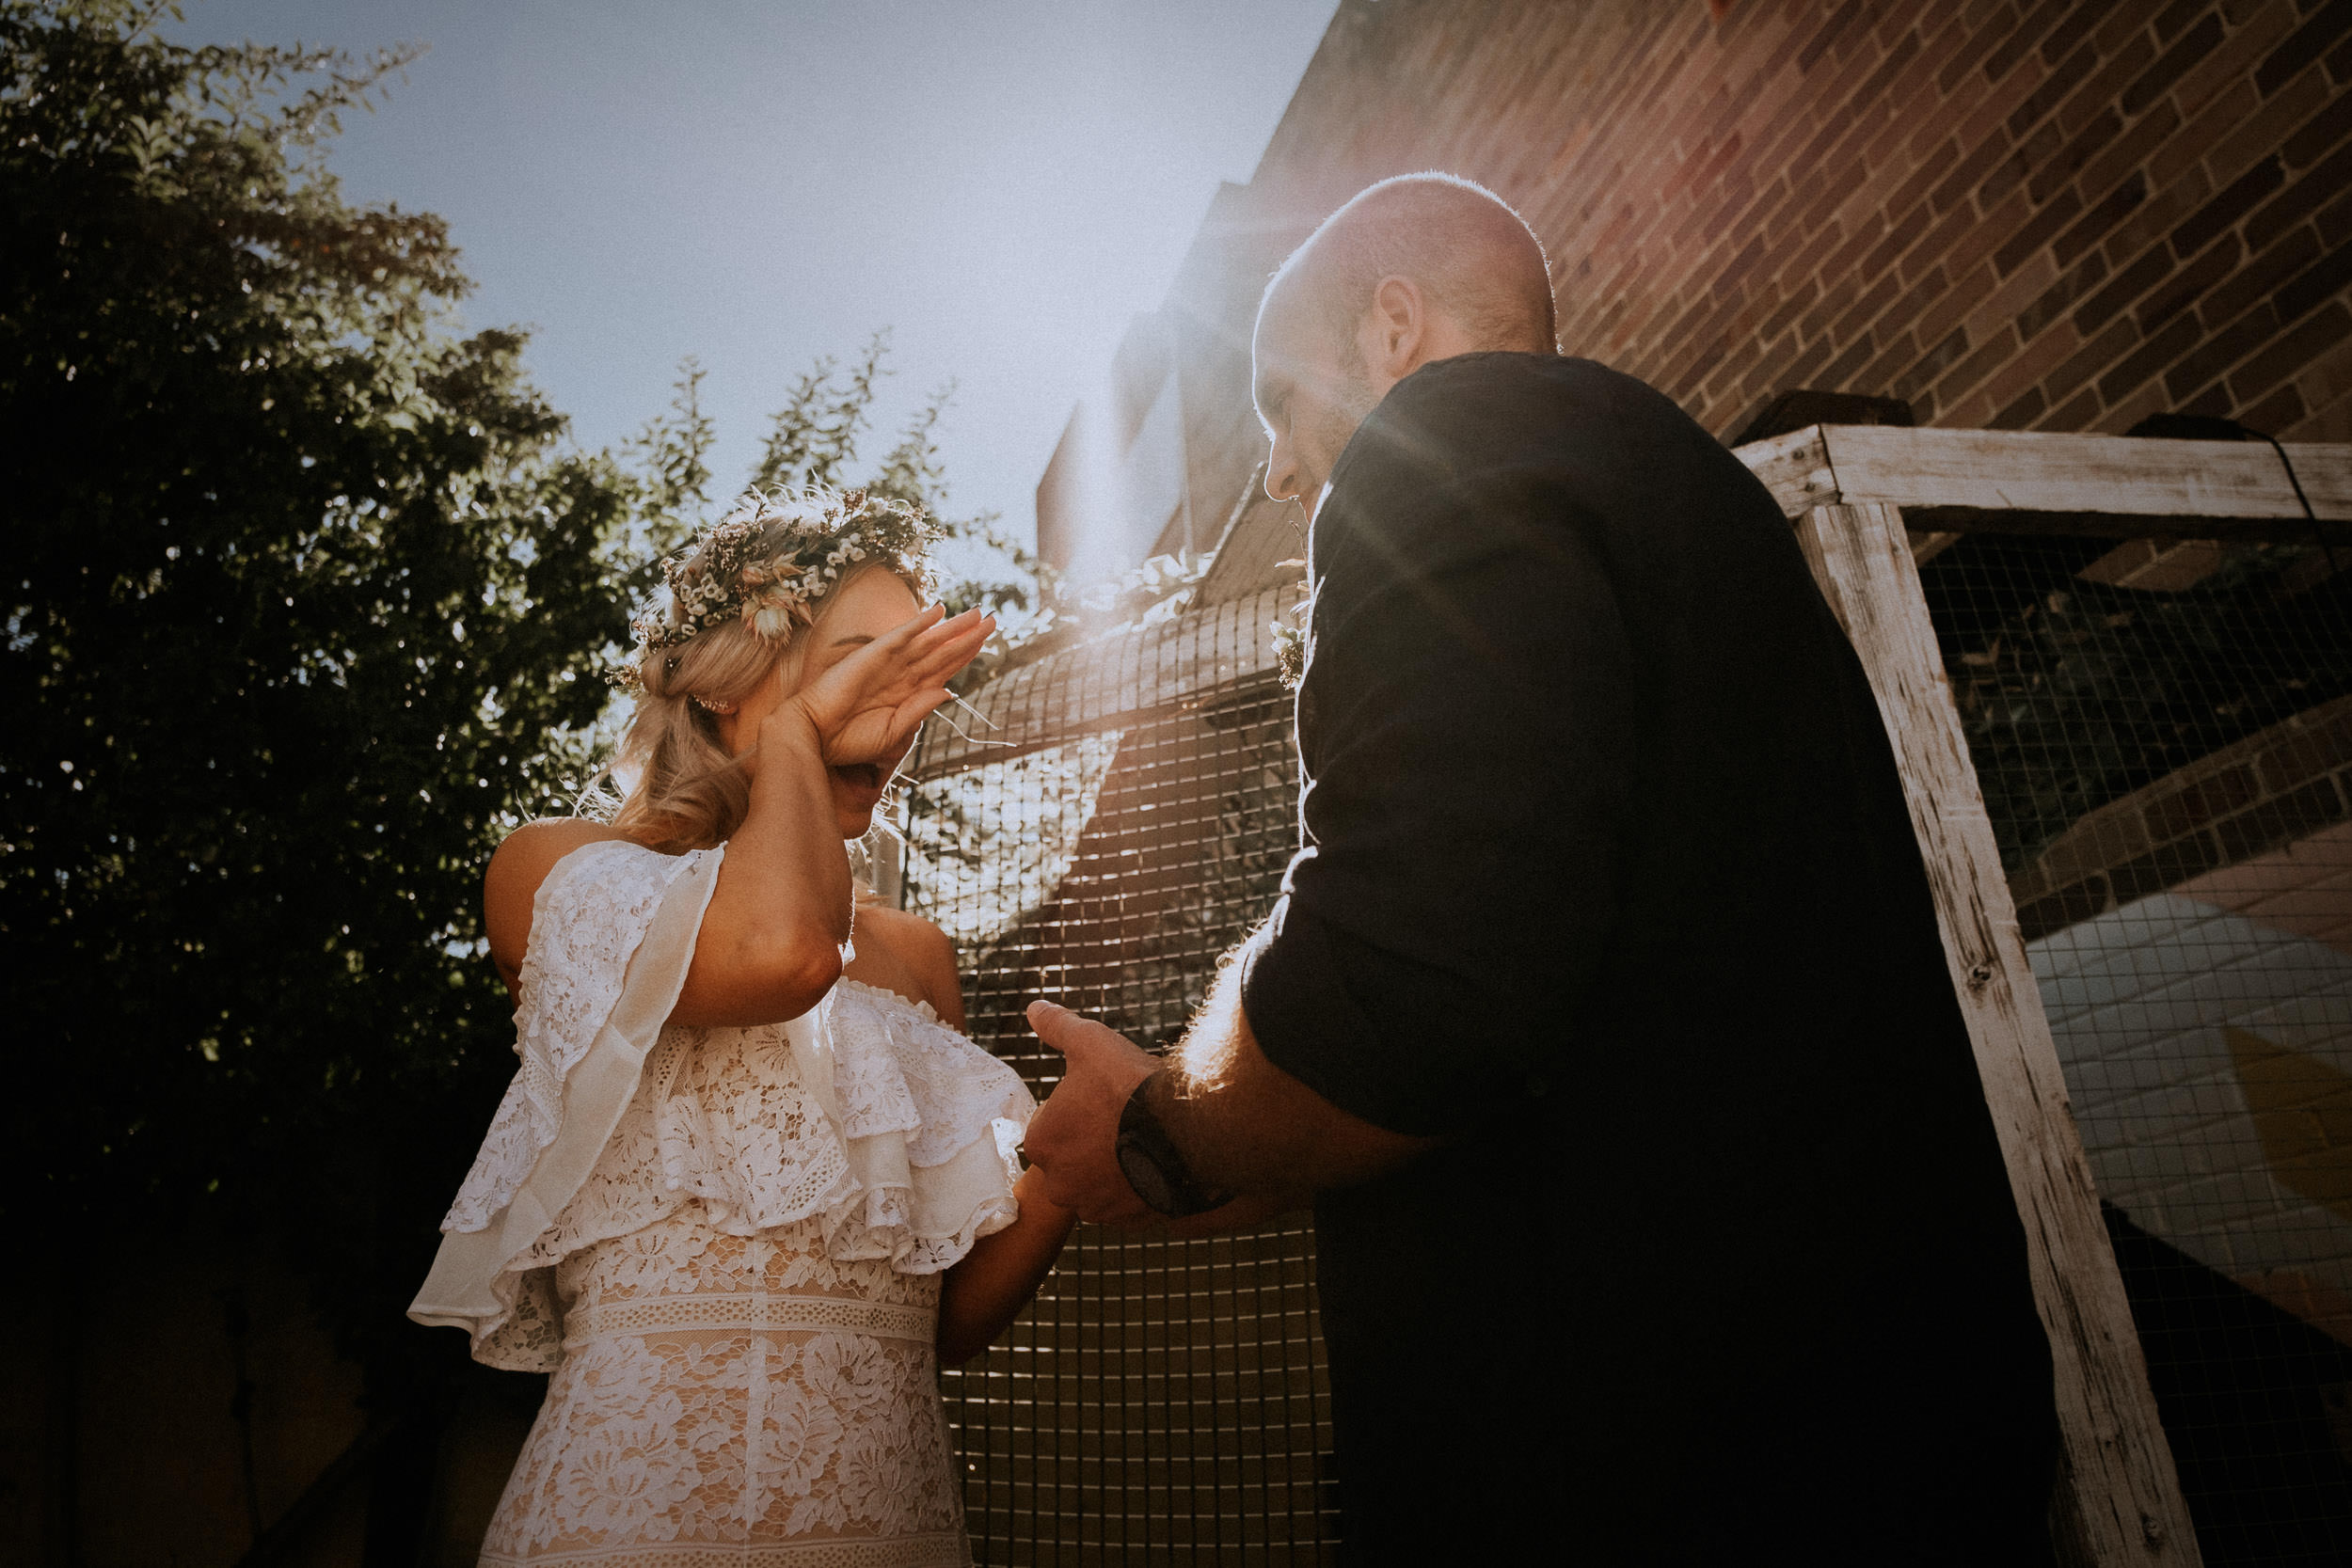 kings _ thieves - beth _ corey backyard airbnb elopement sydney - submission -156.jpg